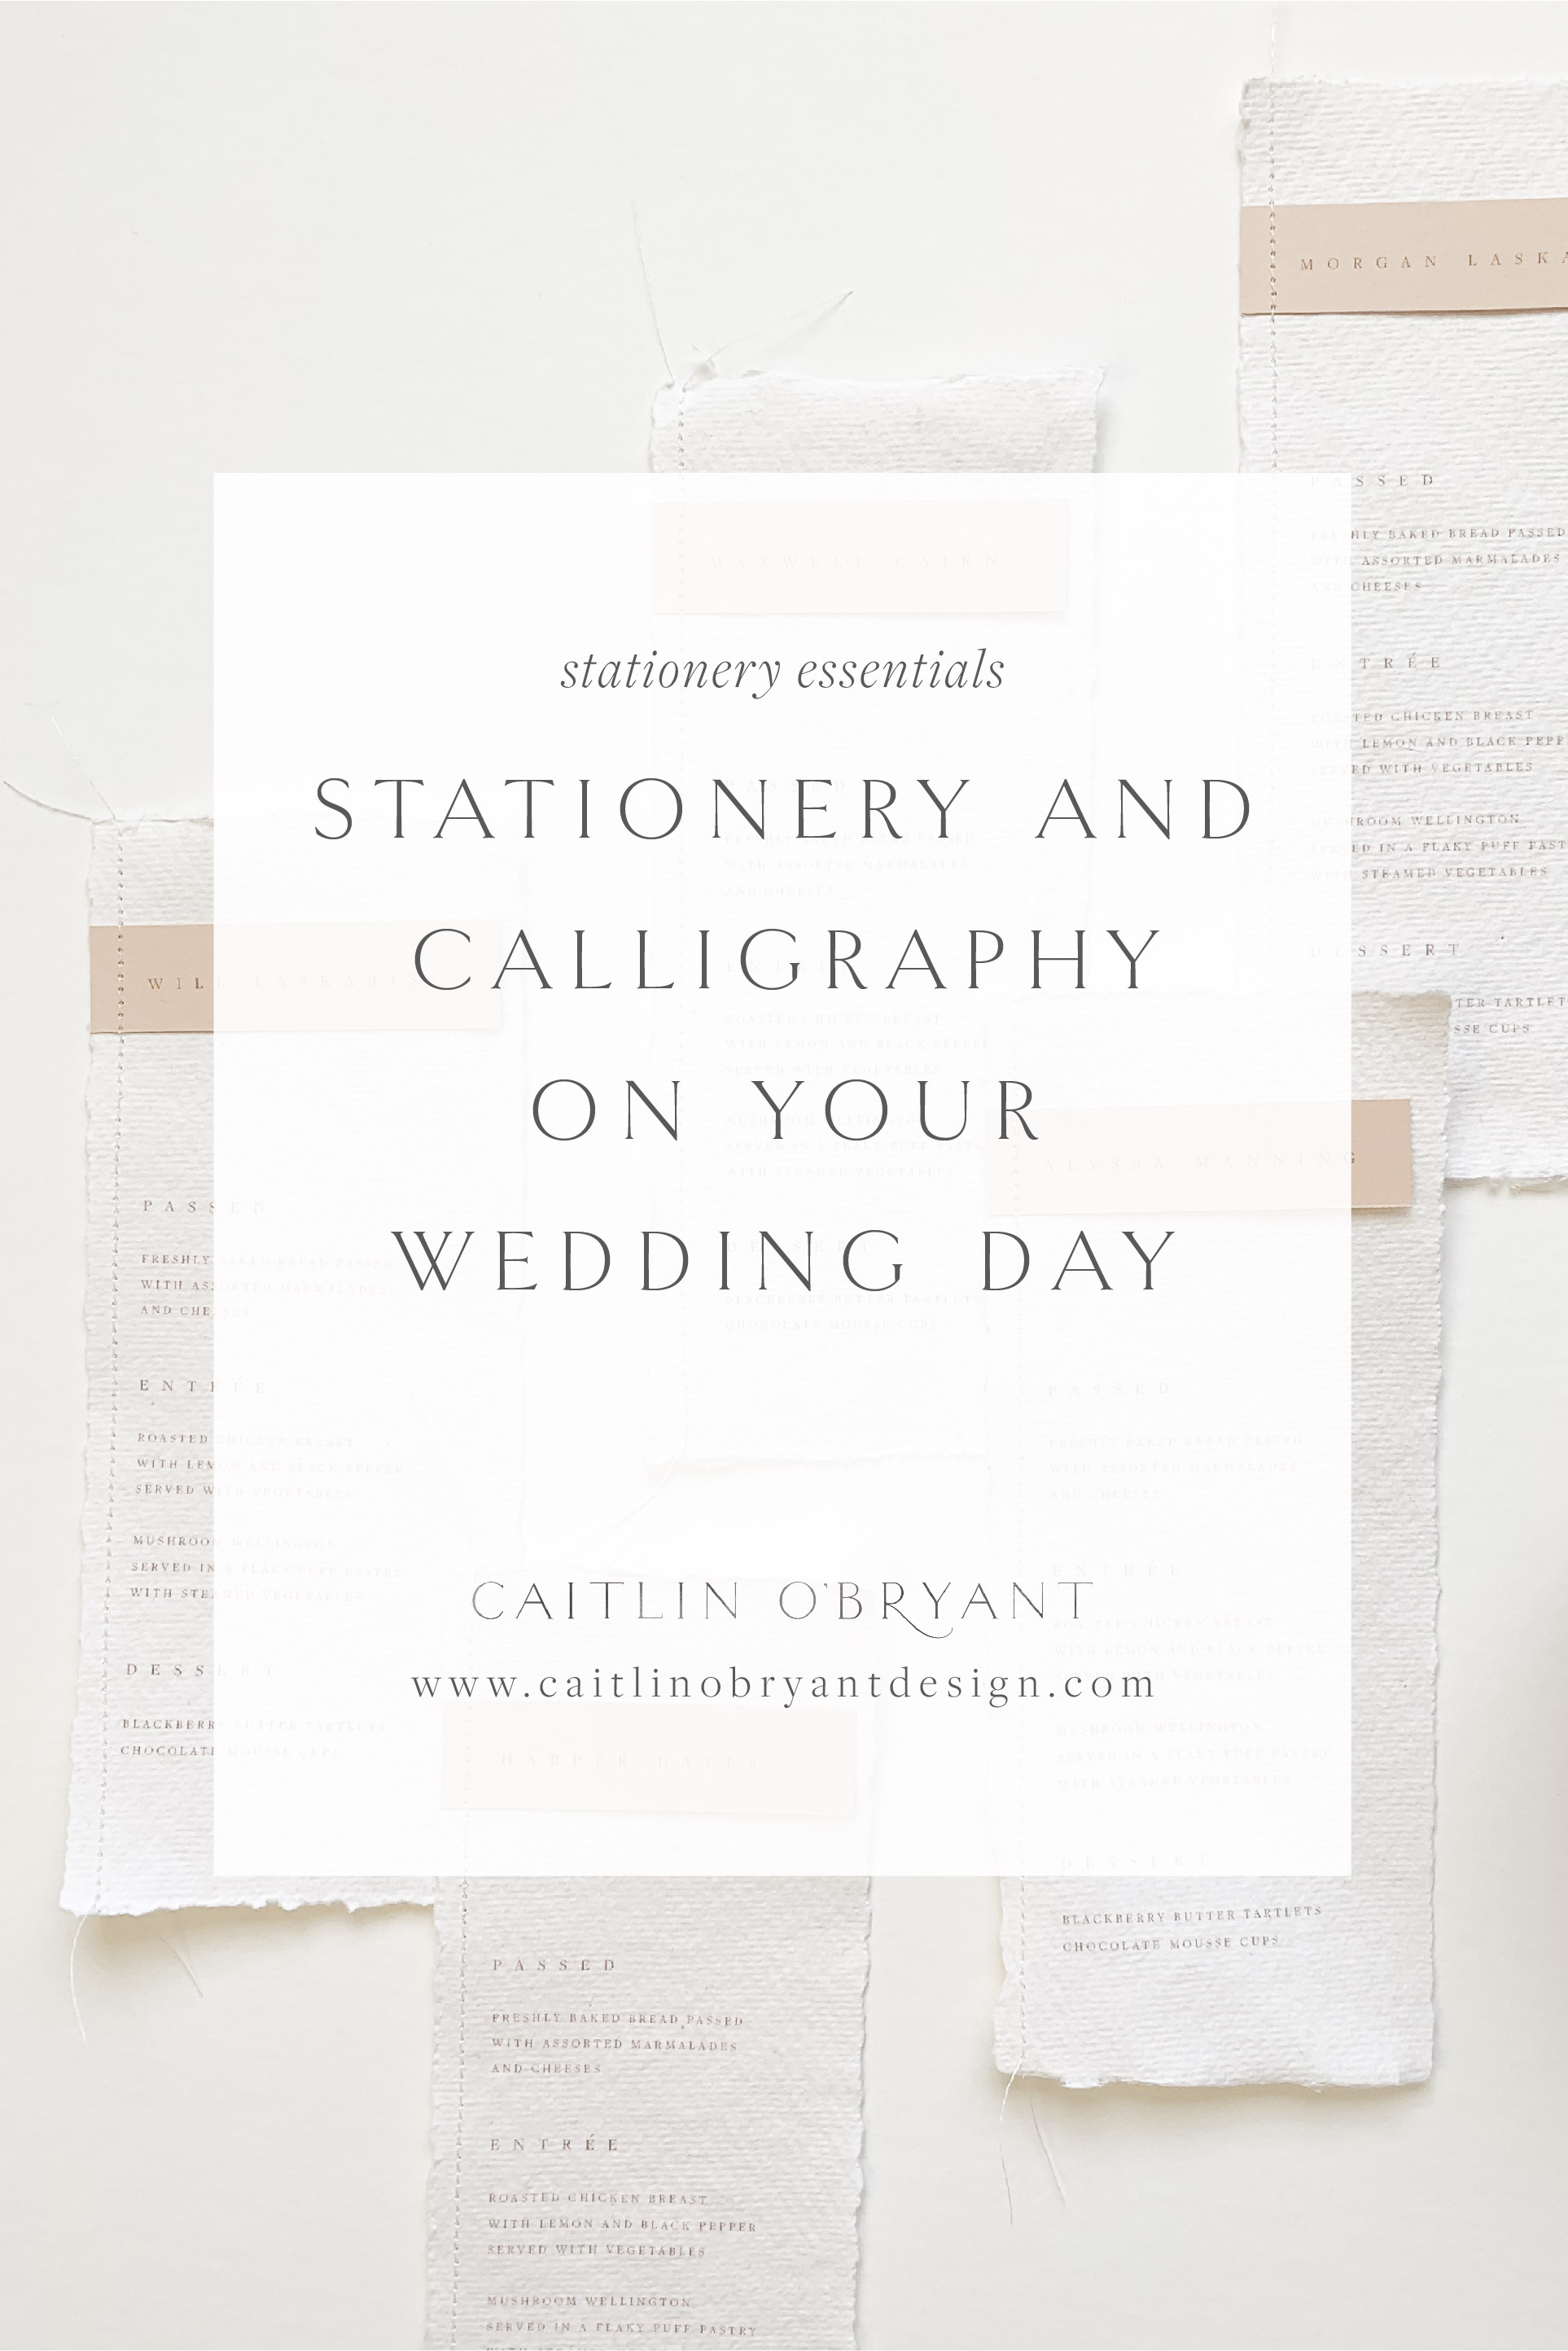 Stationery and Calligraphy on Your Wedding Day. All about menus, place cards, escort cards, seating charts, programs, and other paper goods on your wedding day.